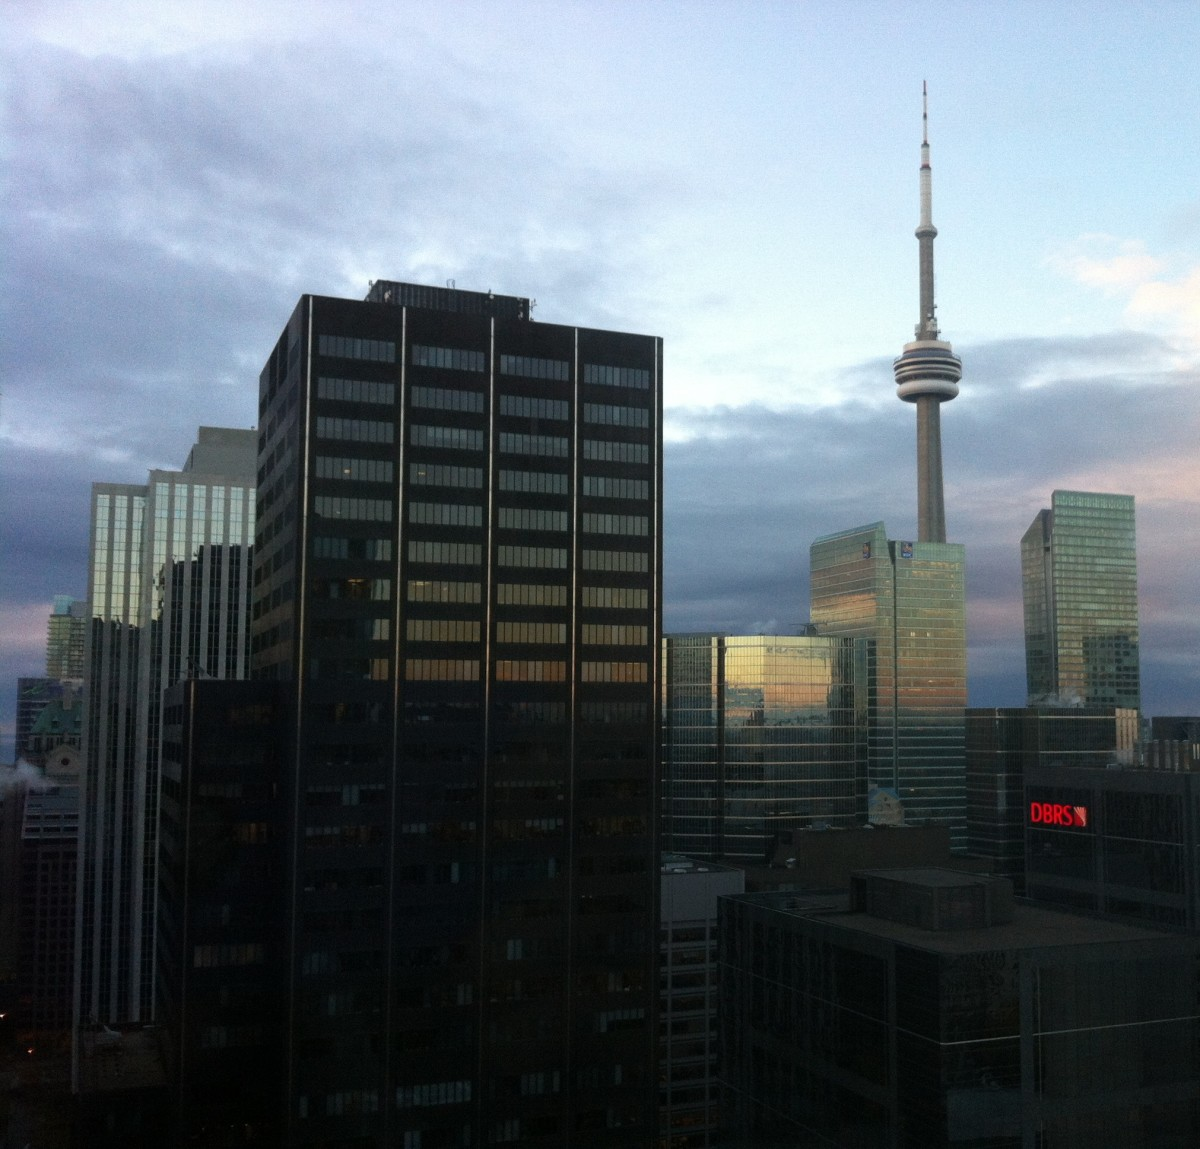 Downtown Toronto, with a view of the CN Tower in the distance.